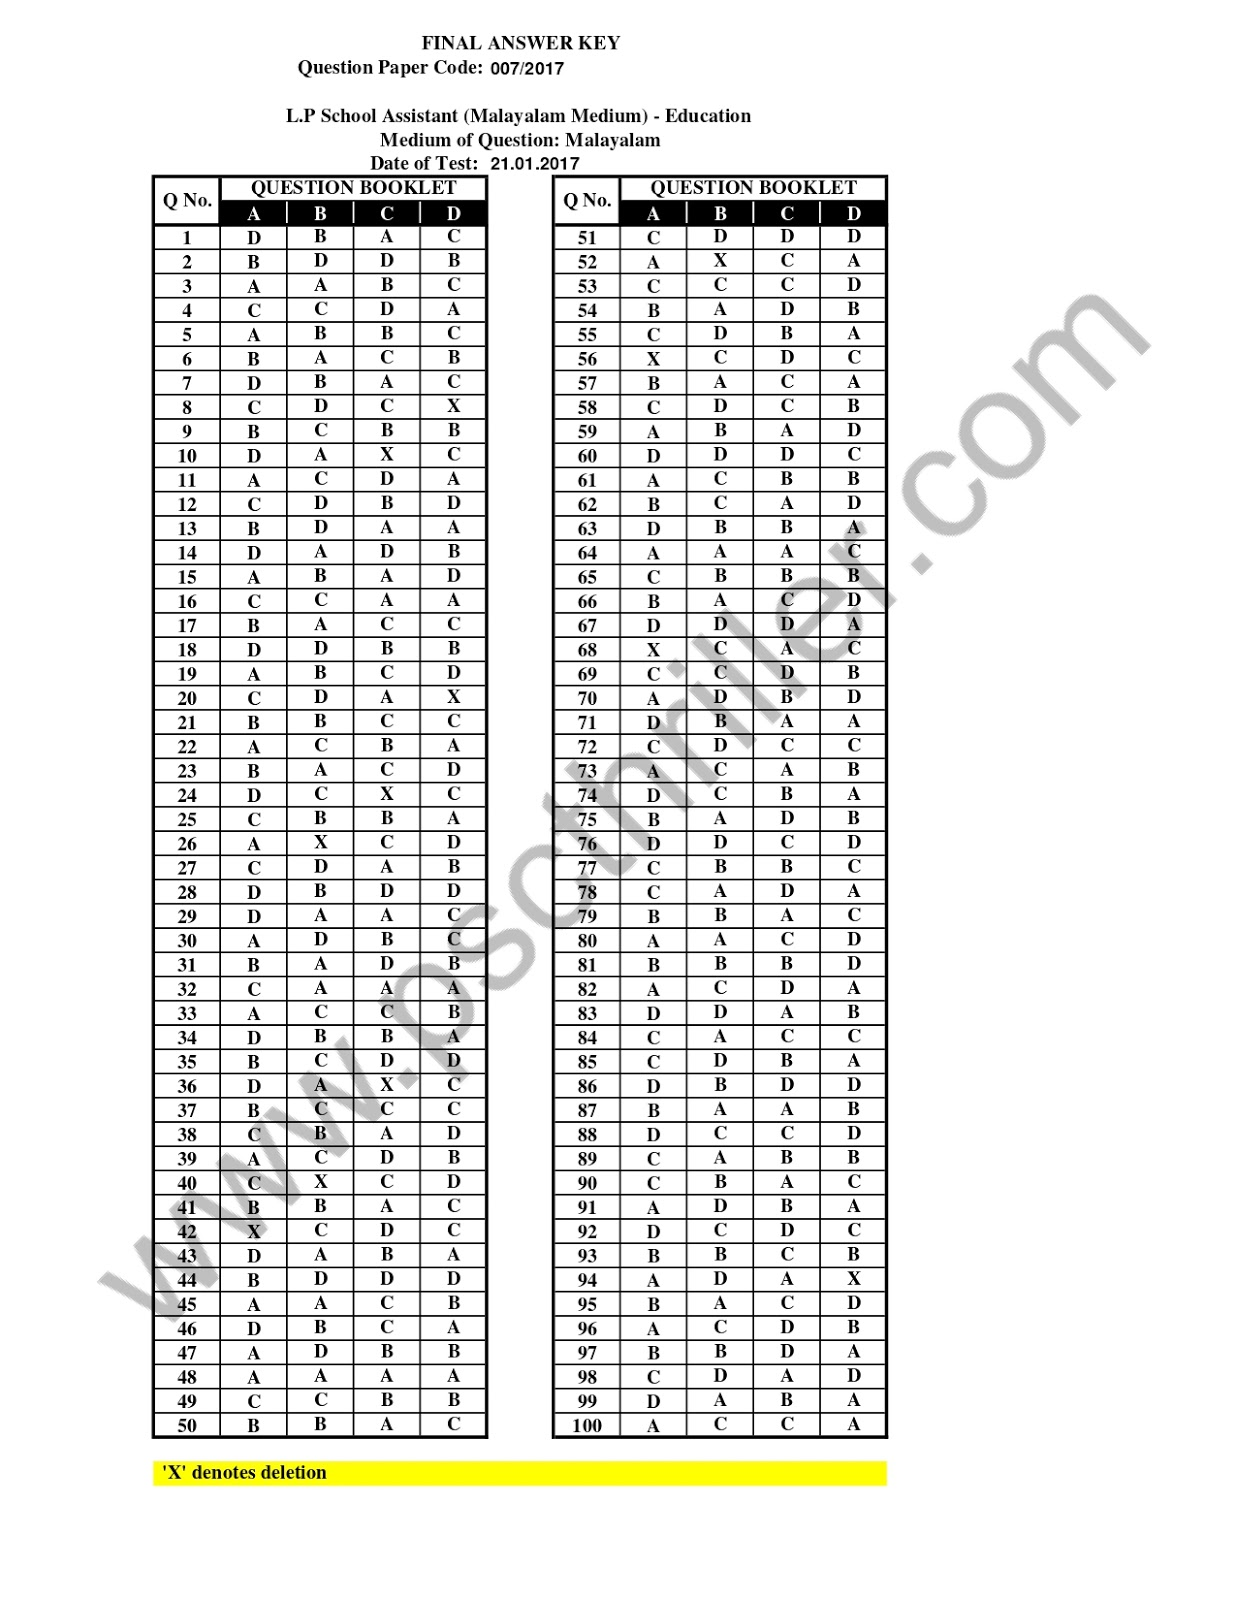 L.P School Assistant - Question Paper with Answer Key- 007/2017- Kerala PSC